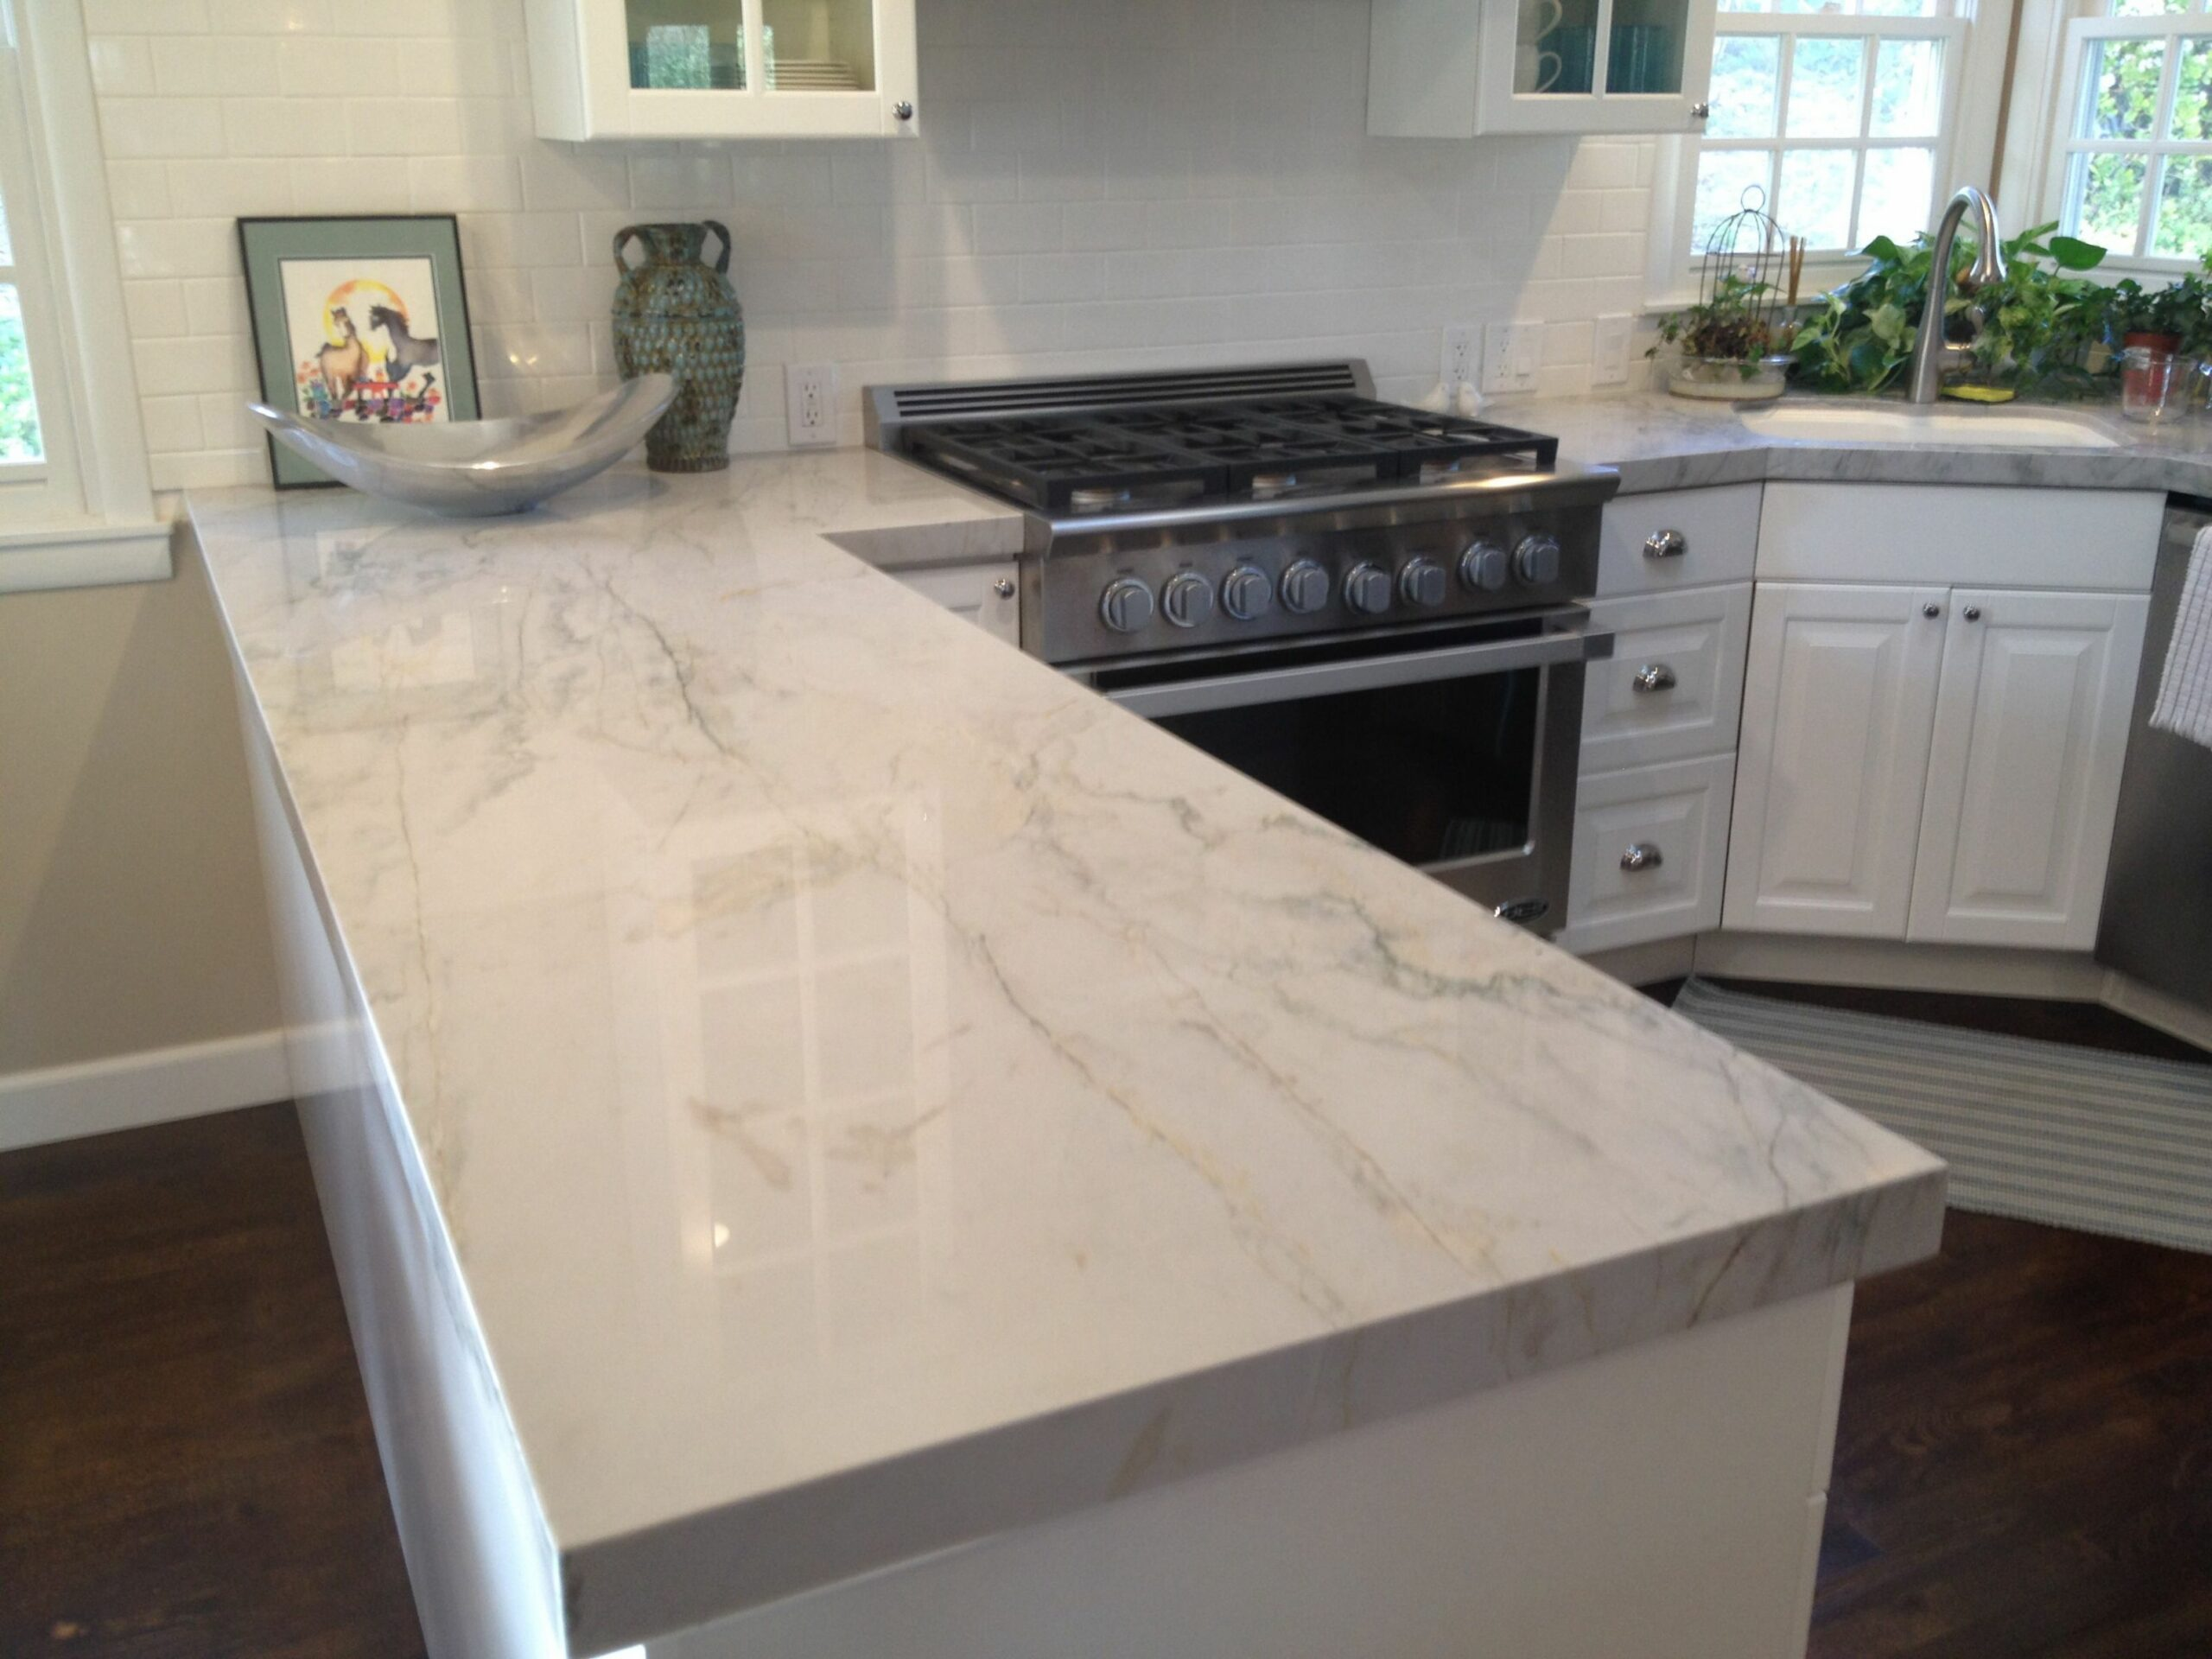 Mesmerizing Quartzite Countertops Design For Modern Kitchen: Wall ..